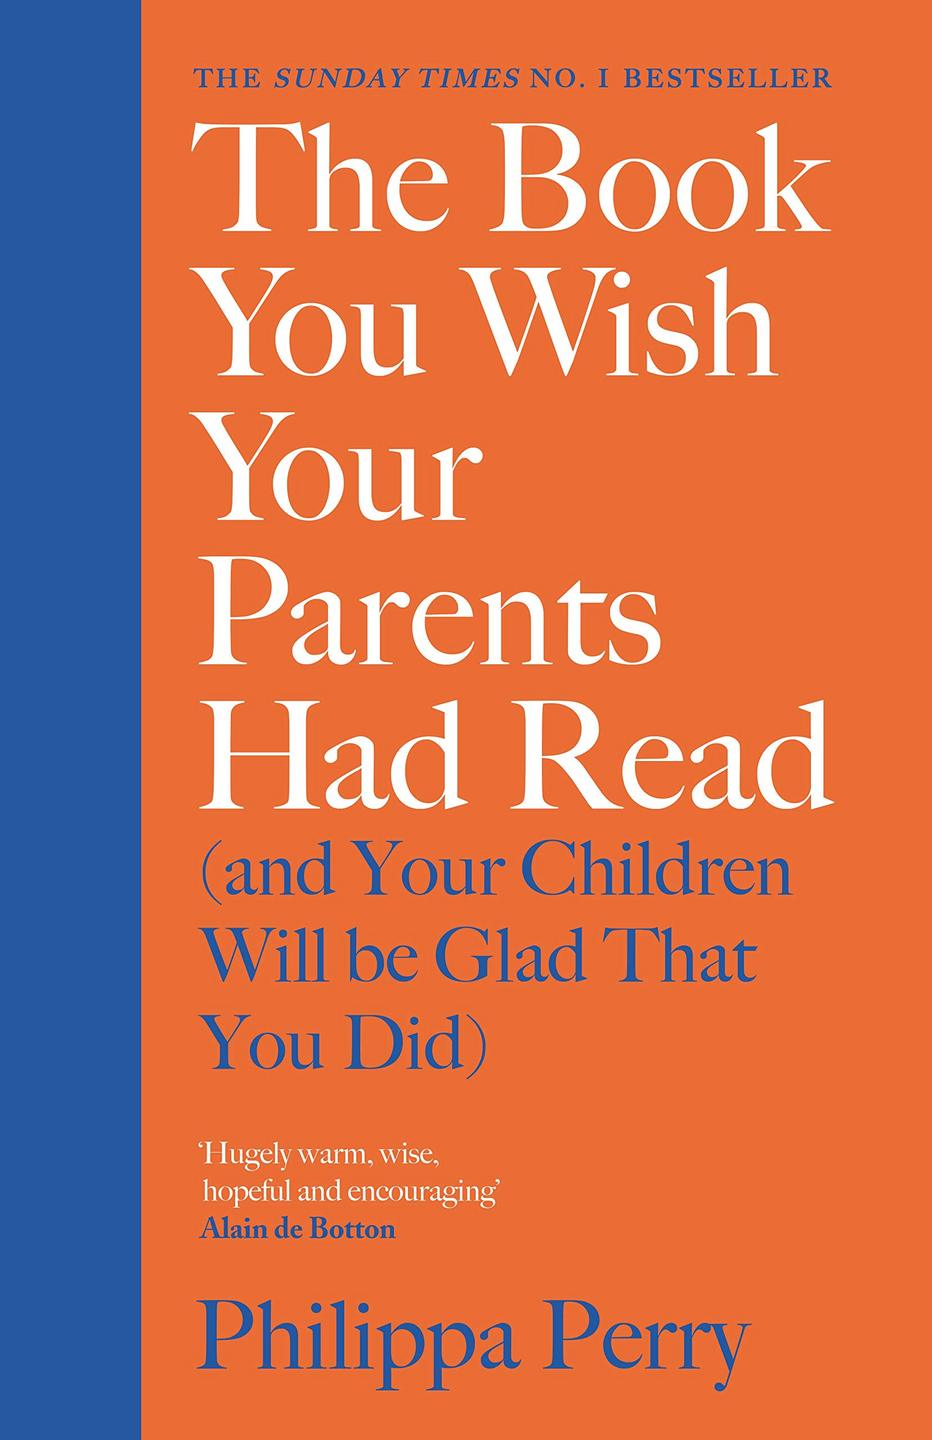 The Book You Wish Your Parents Had Read review: It made me angry